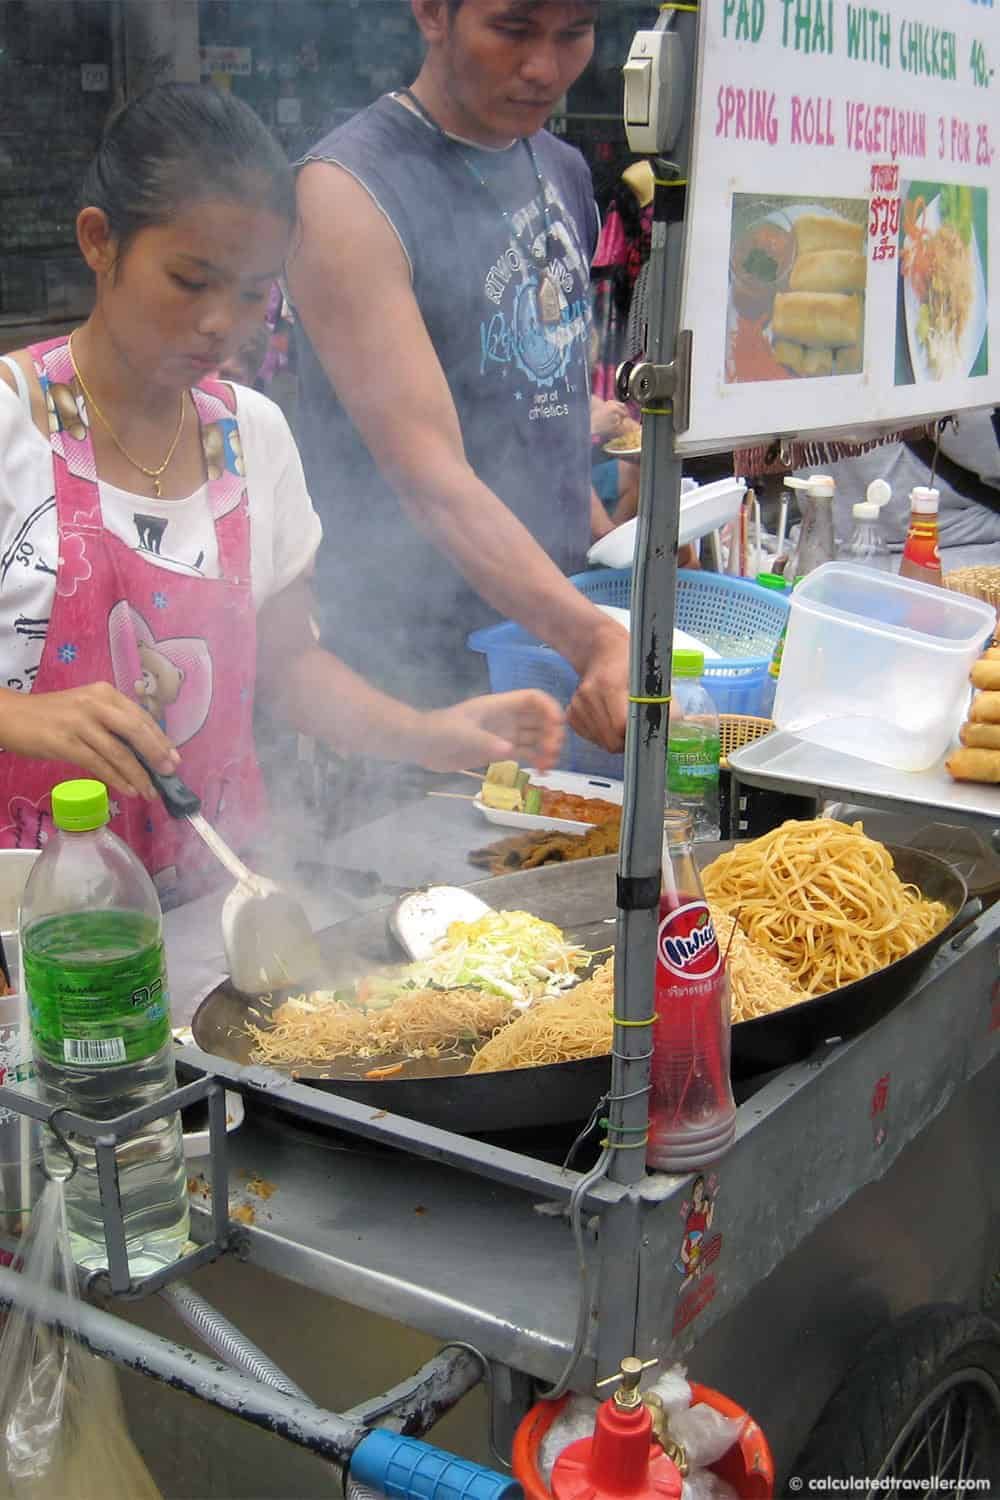 Eating out in Bangkok, Thailand - Street vendor frying noodles | #Bangkok #Thailand #noodles #food